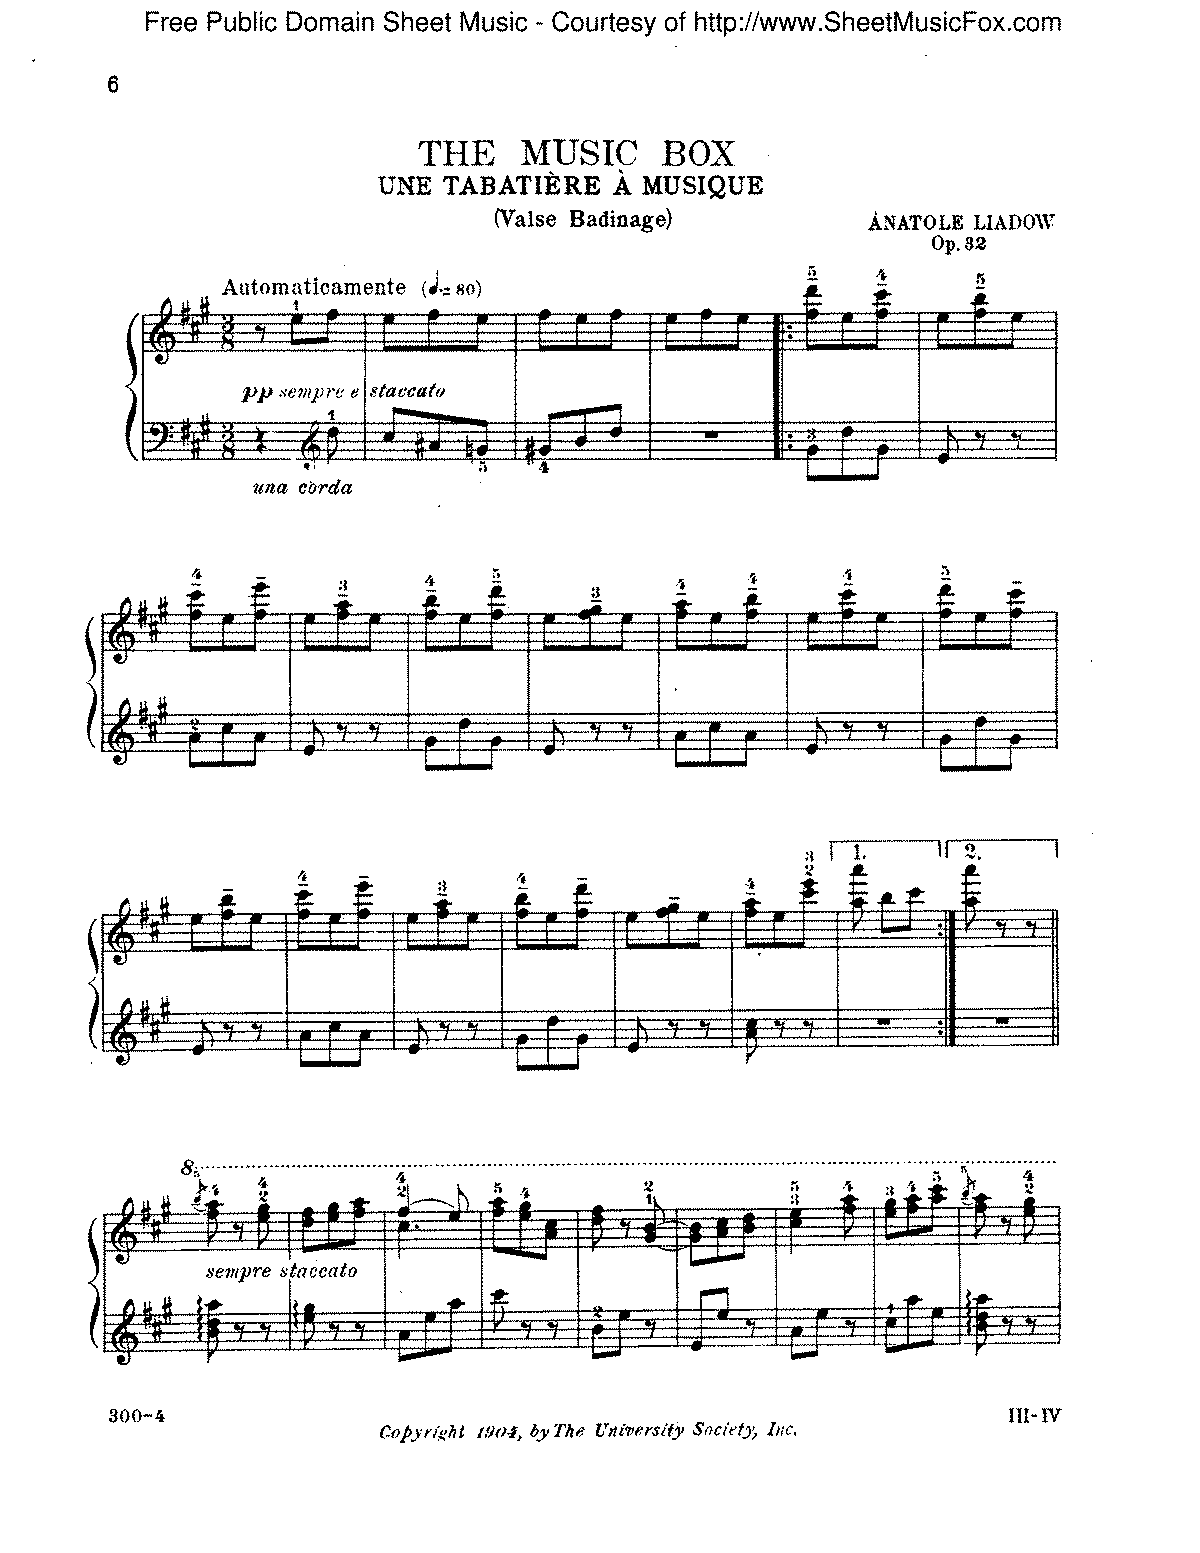 Liadov - The Music Box, Op.32.pdf